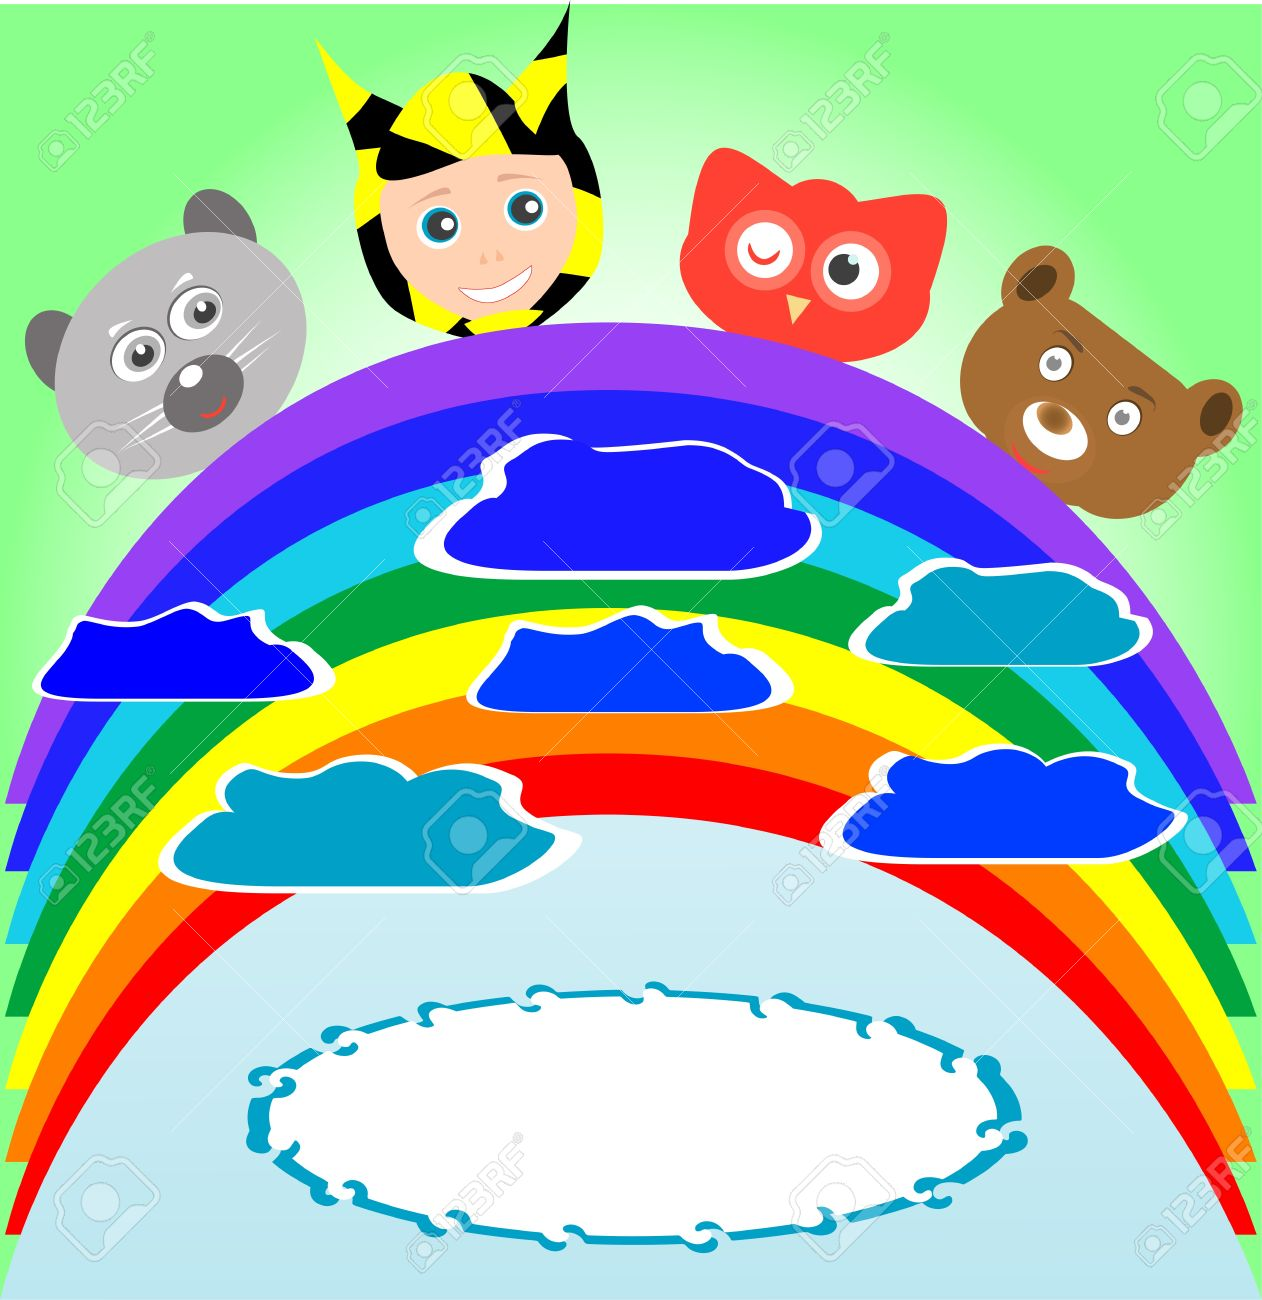 Cute Kid And Smile Animals Viewing Rainbow Royalty Free Cliparts.